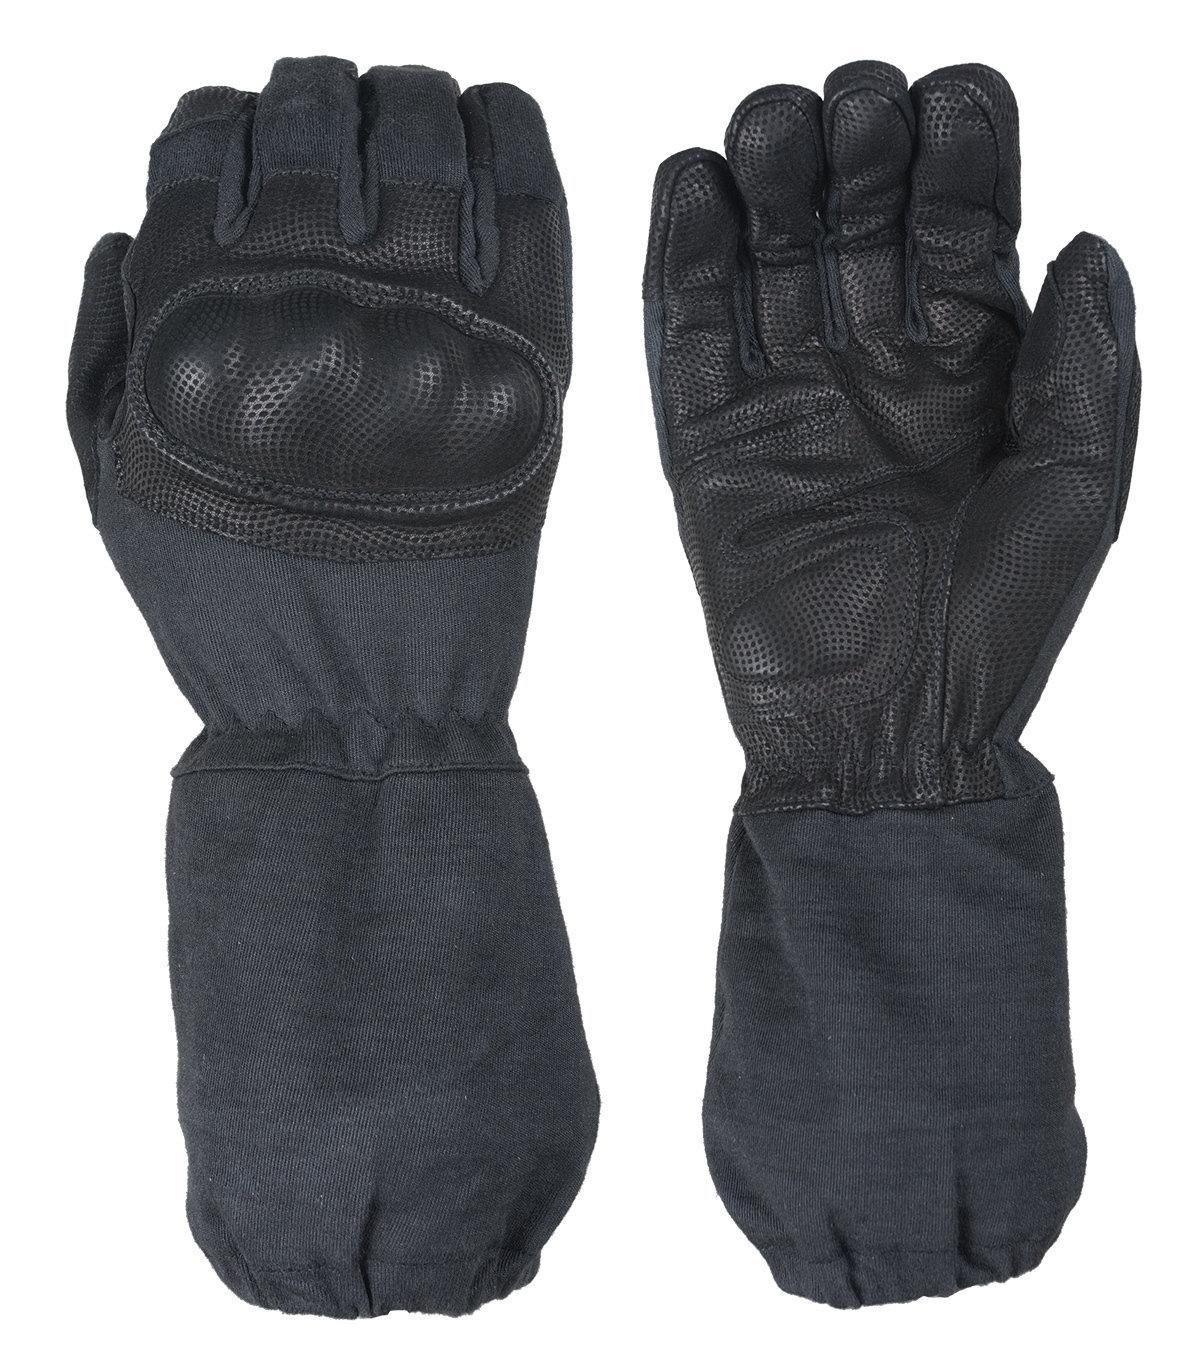 SpecOps™ - Cut Resistant Gloves w/ Hard Knuckles